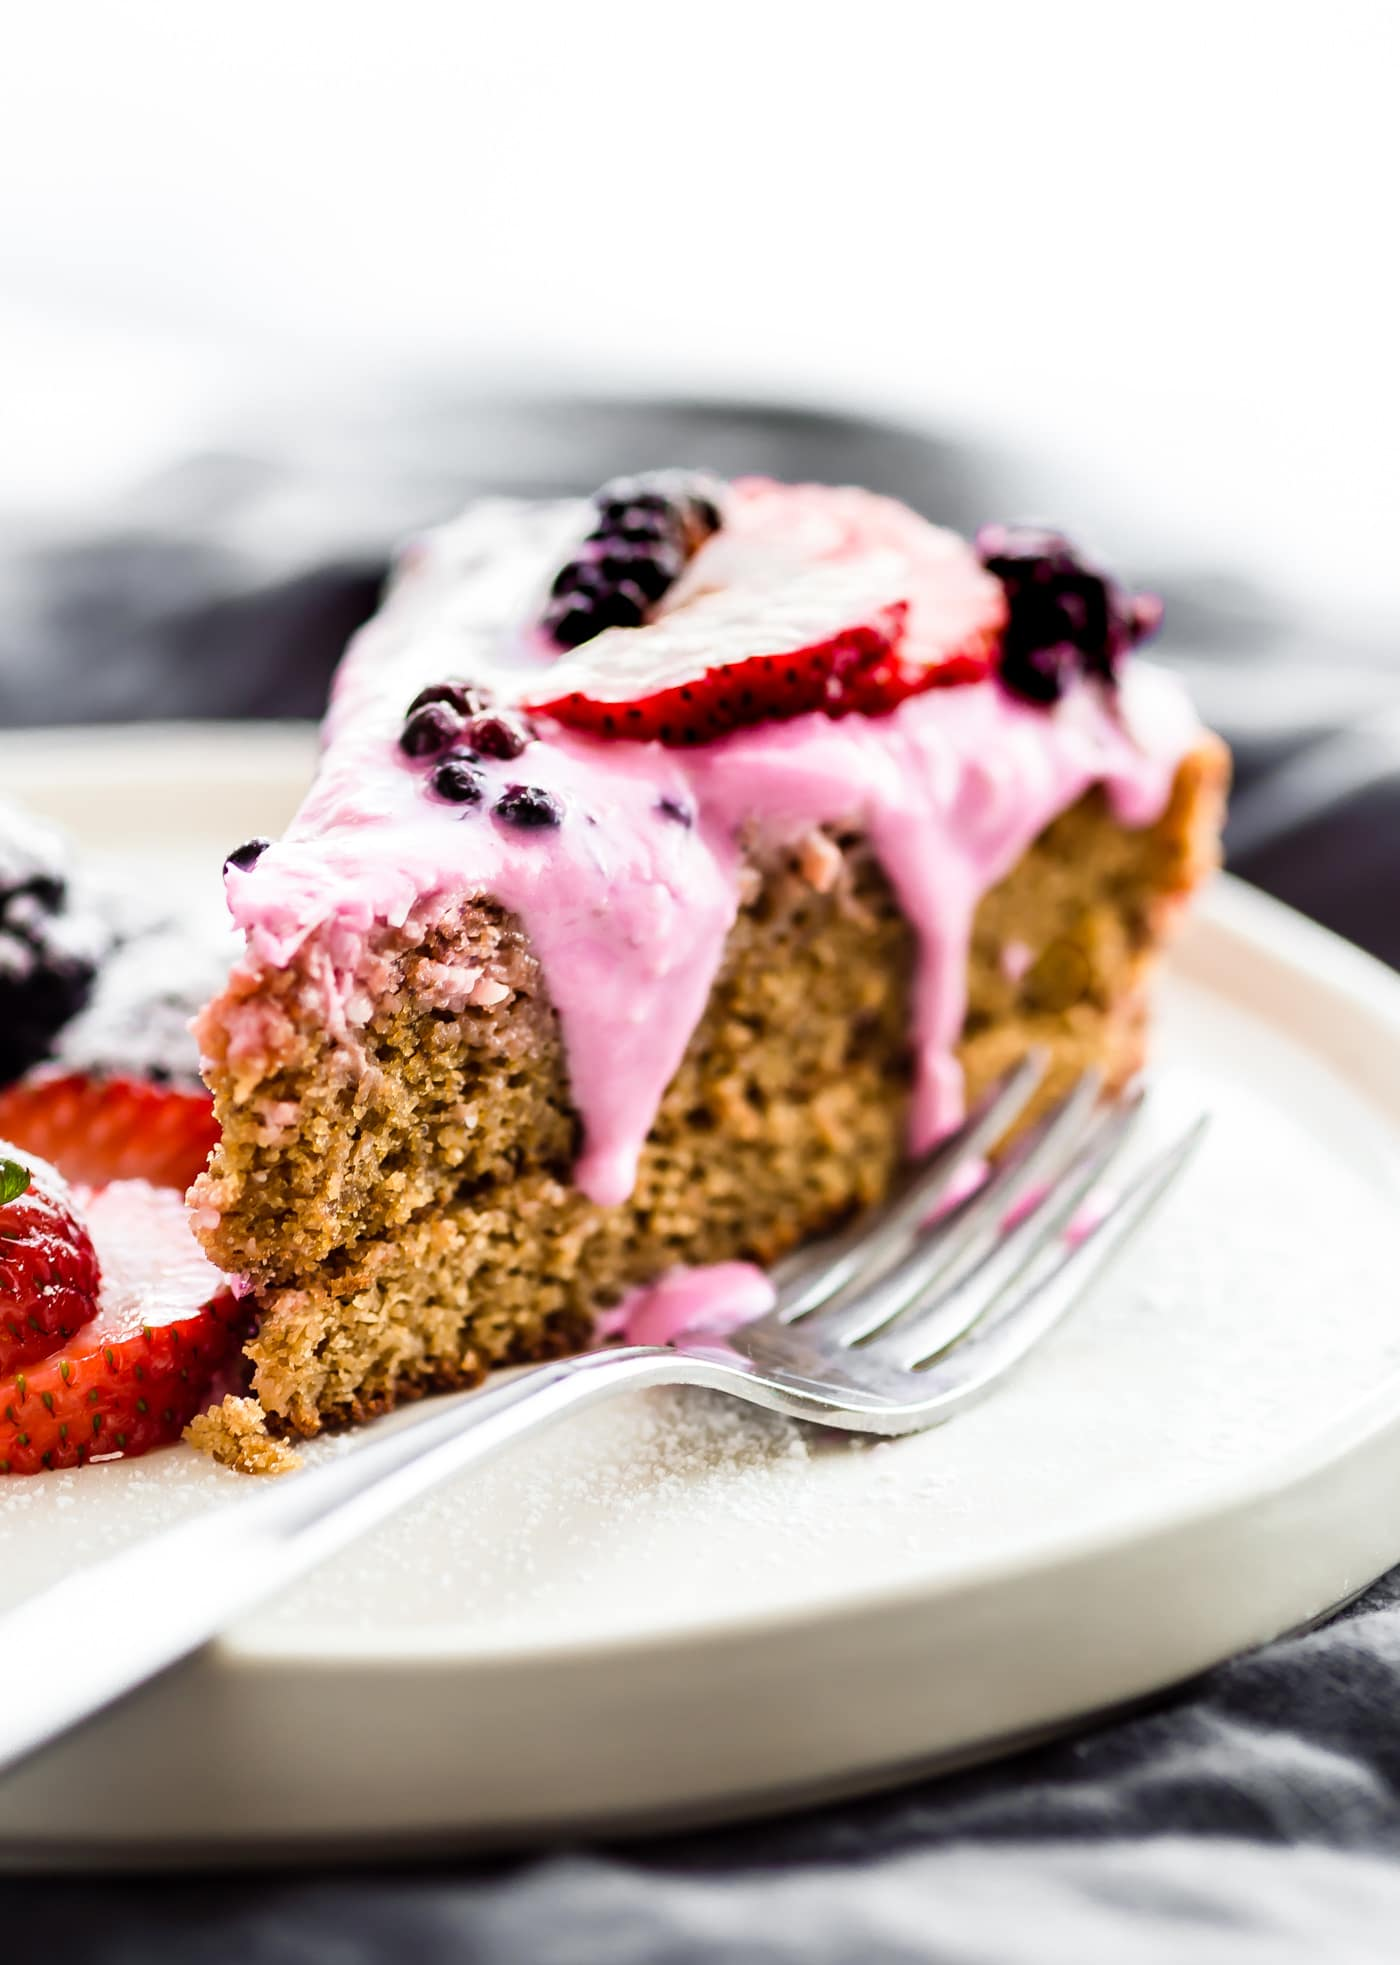 This berry yogurt frosted flourless cake is incredibly light and fluffy. A flourless cake made simply from egg whites, almond flour, and berries. Topped with a strawberry greek yogurt frosting. It's the perfect light dessert for summer!